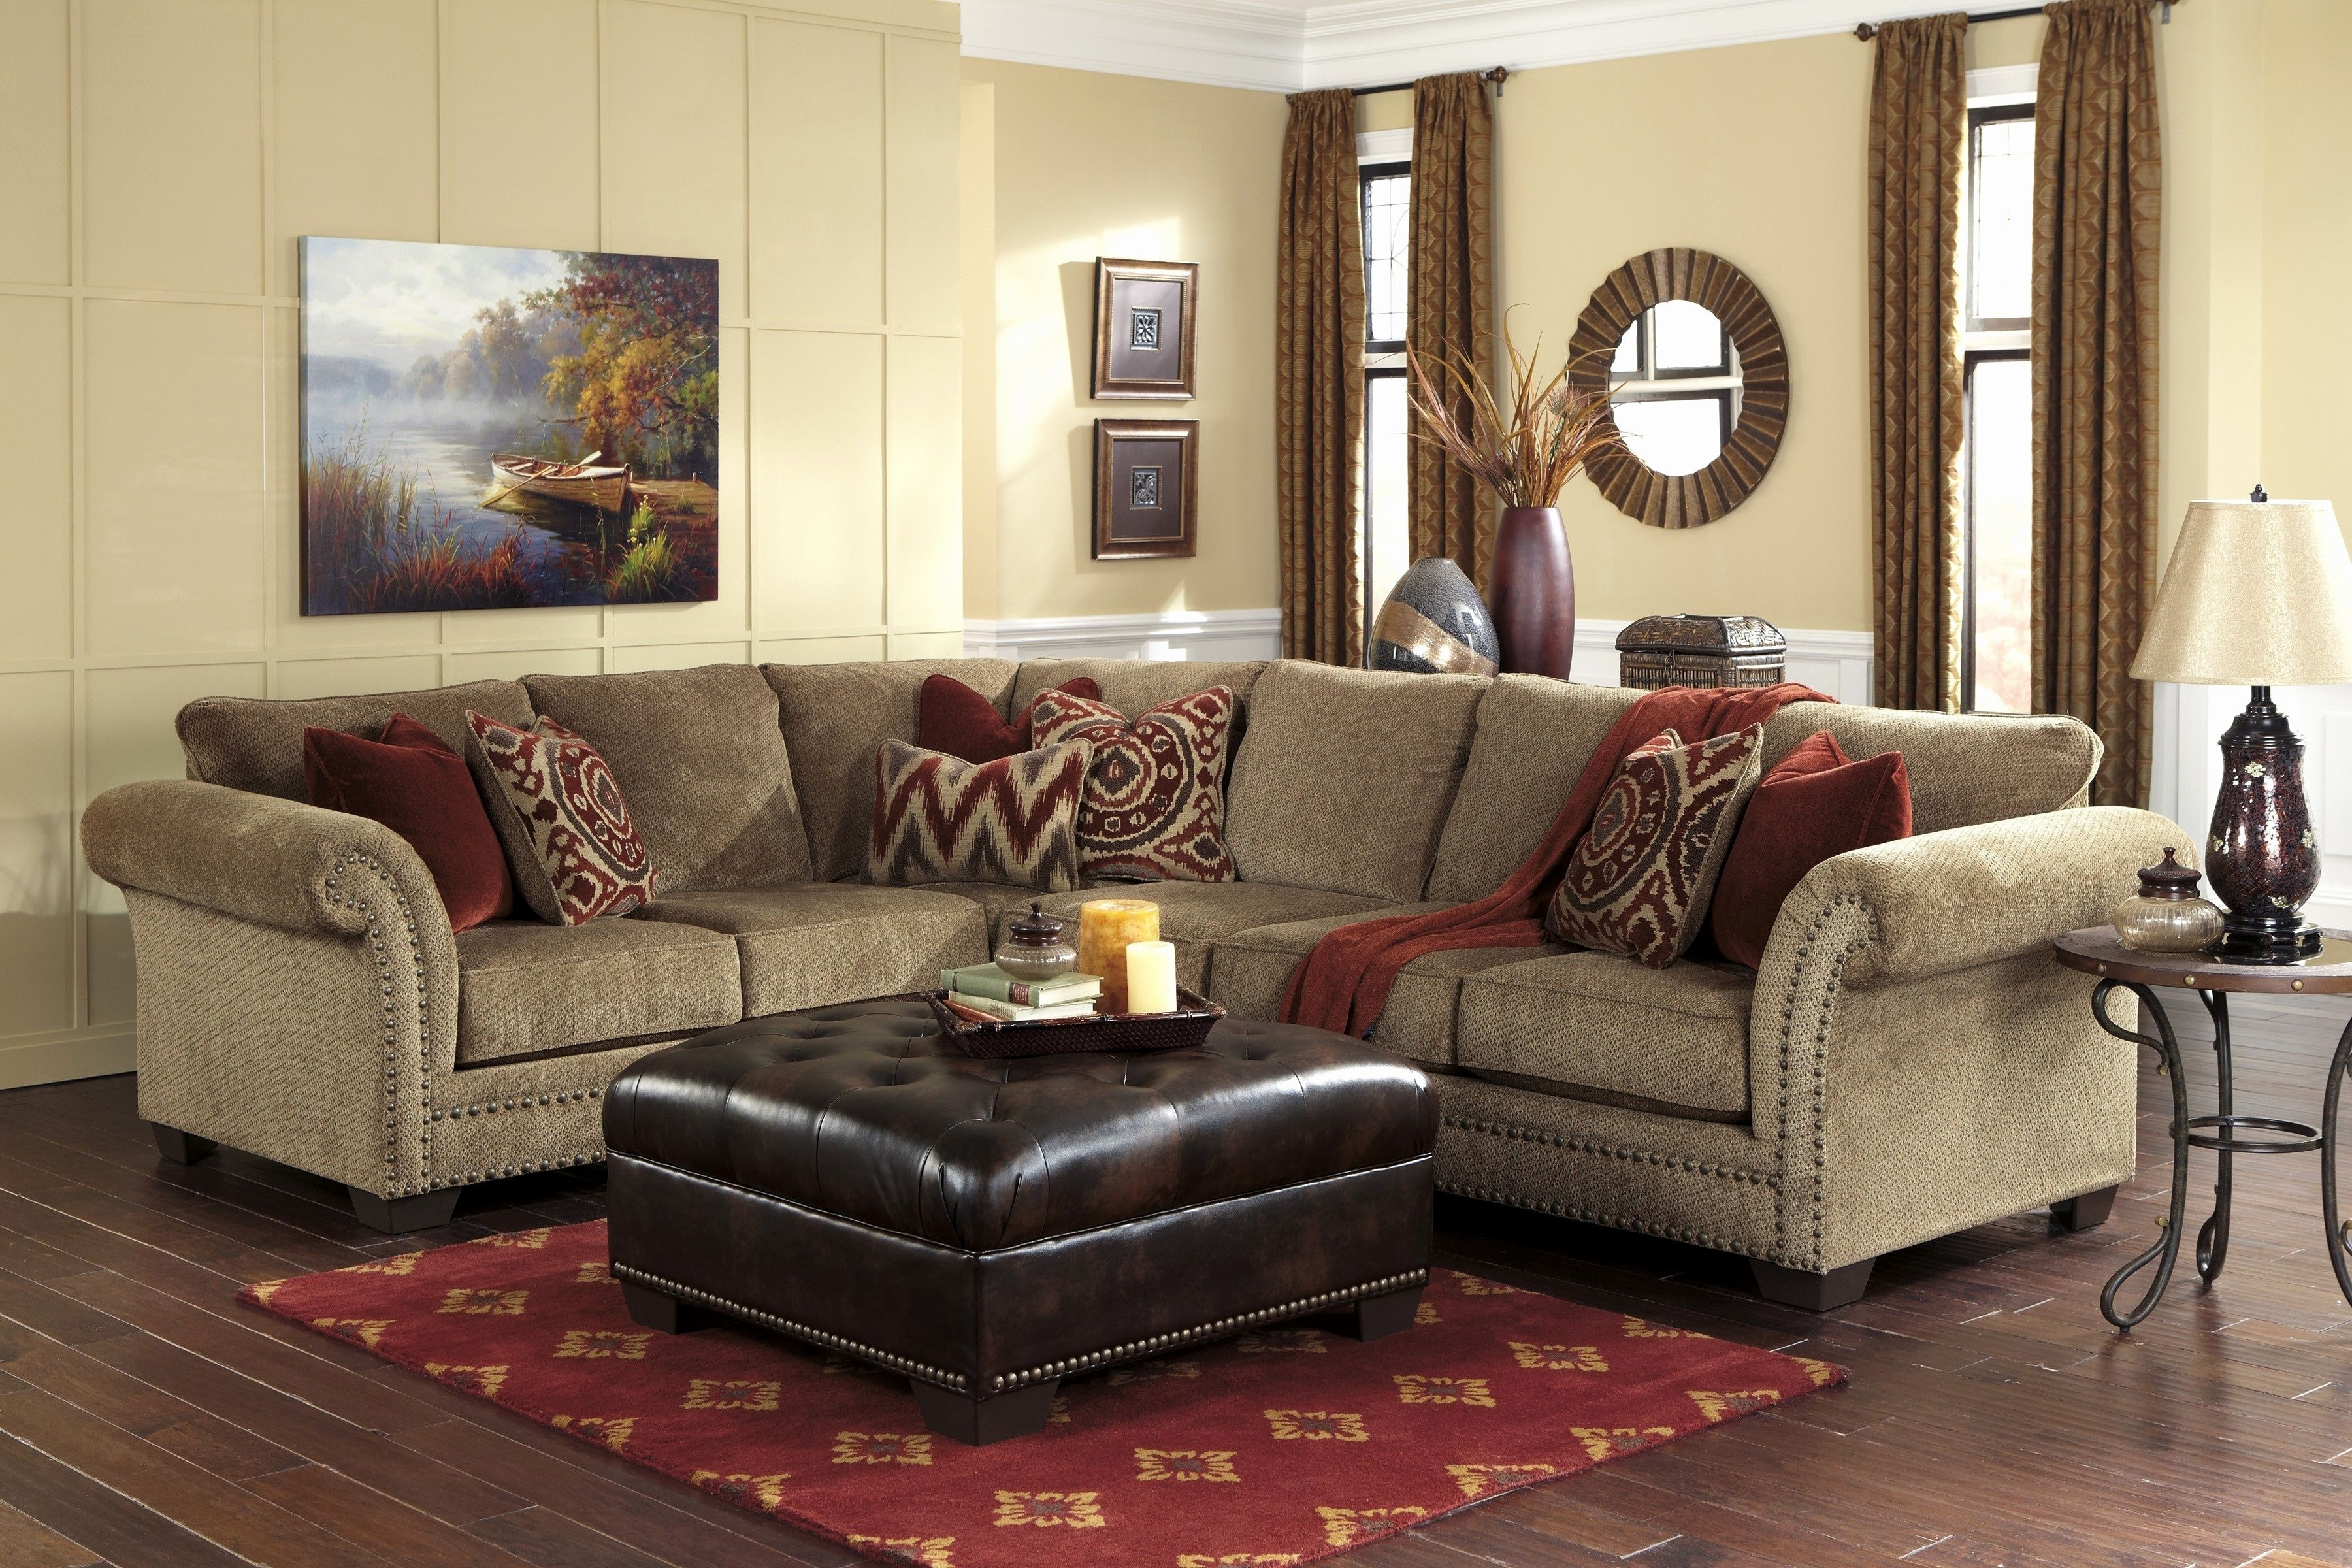 Sectional Sofas With Oversized Ottoman Pertaining To Latest Best Of Sectional Sofa With Oversized Ottoman Graphics 88 Creative (View 9 of 15)